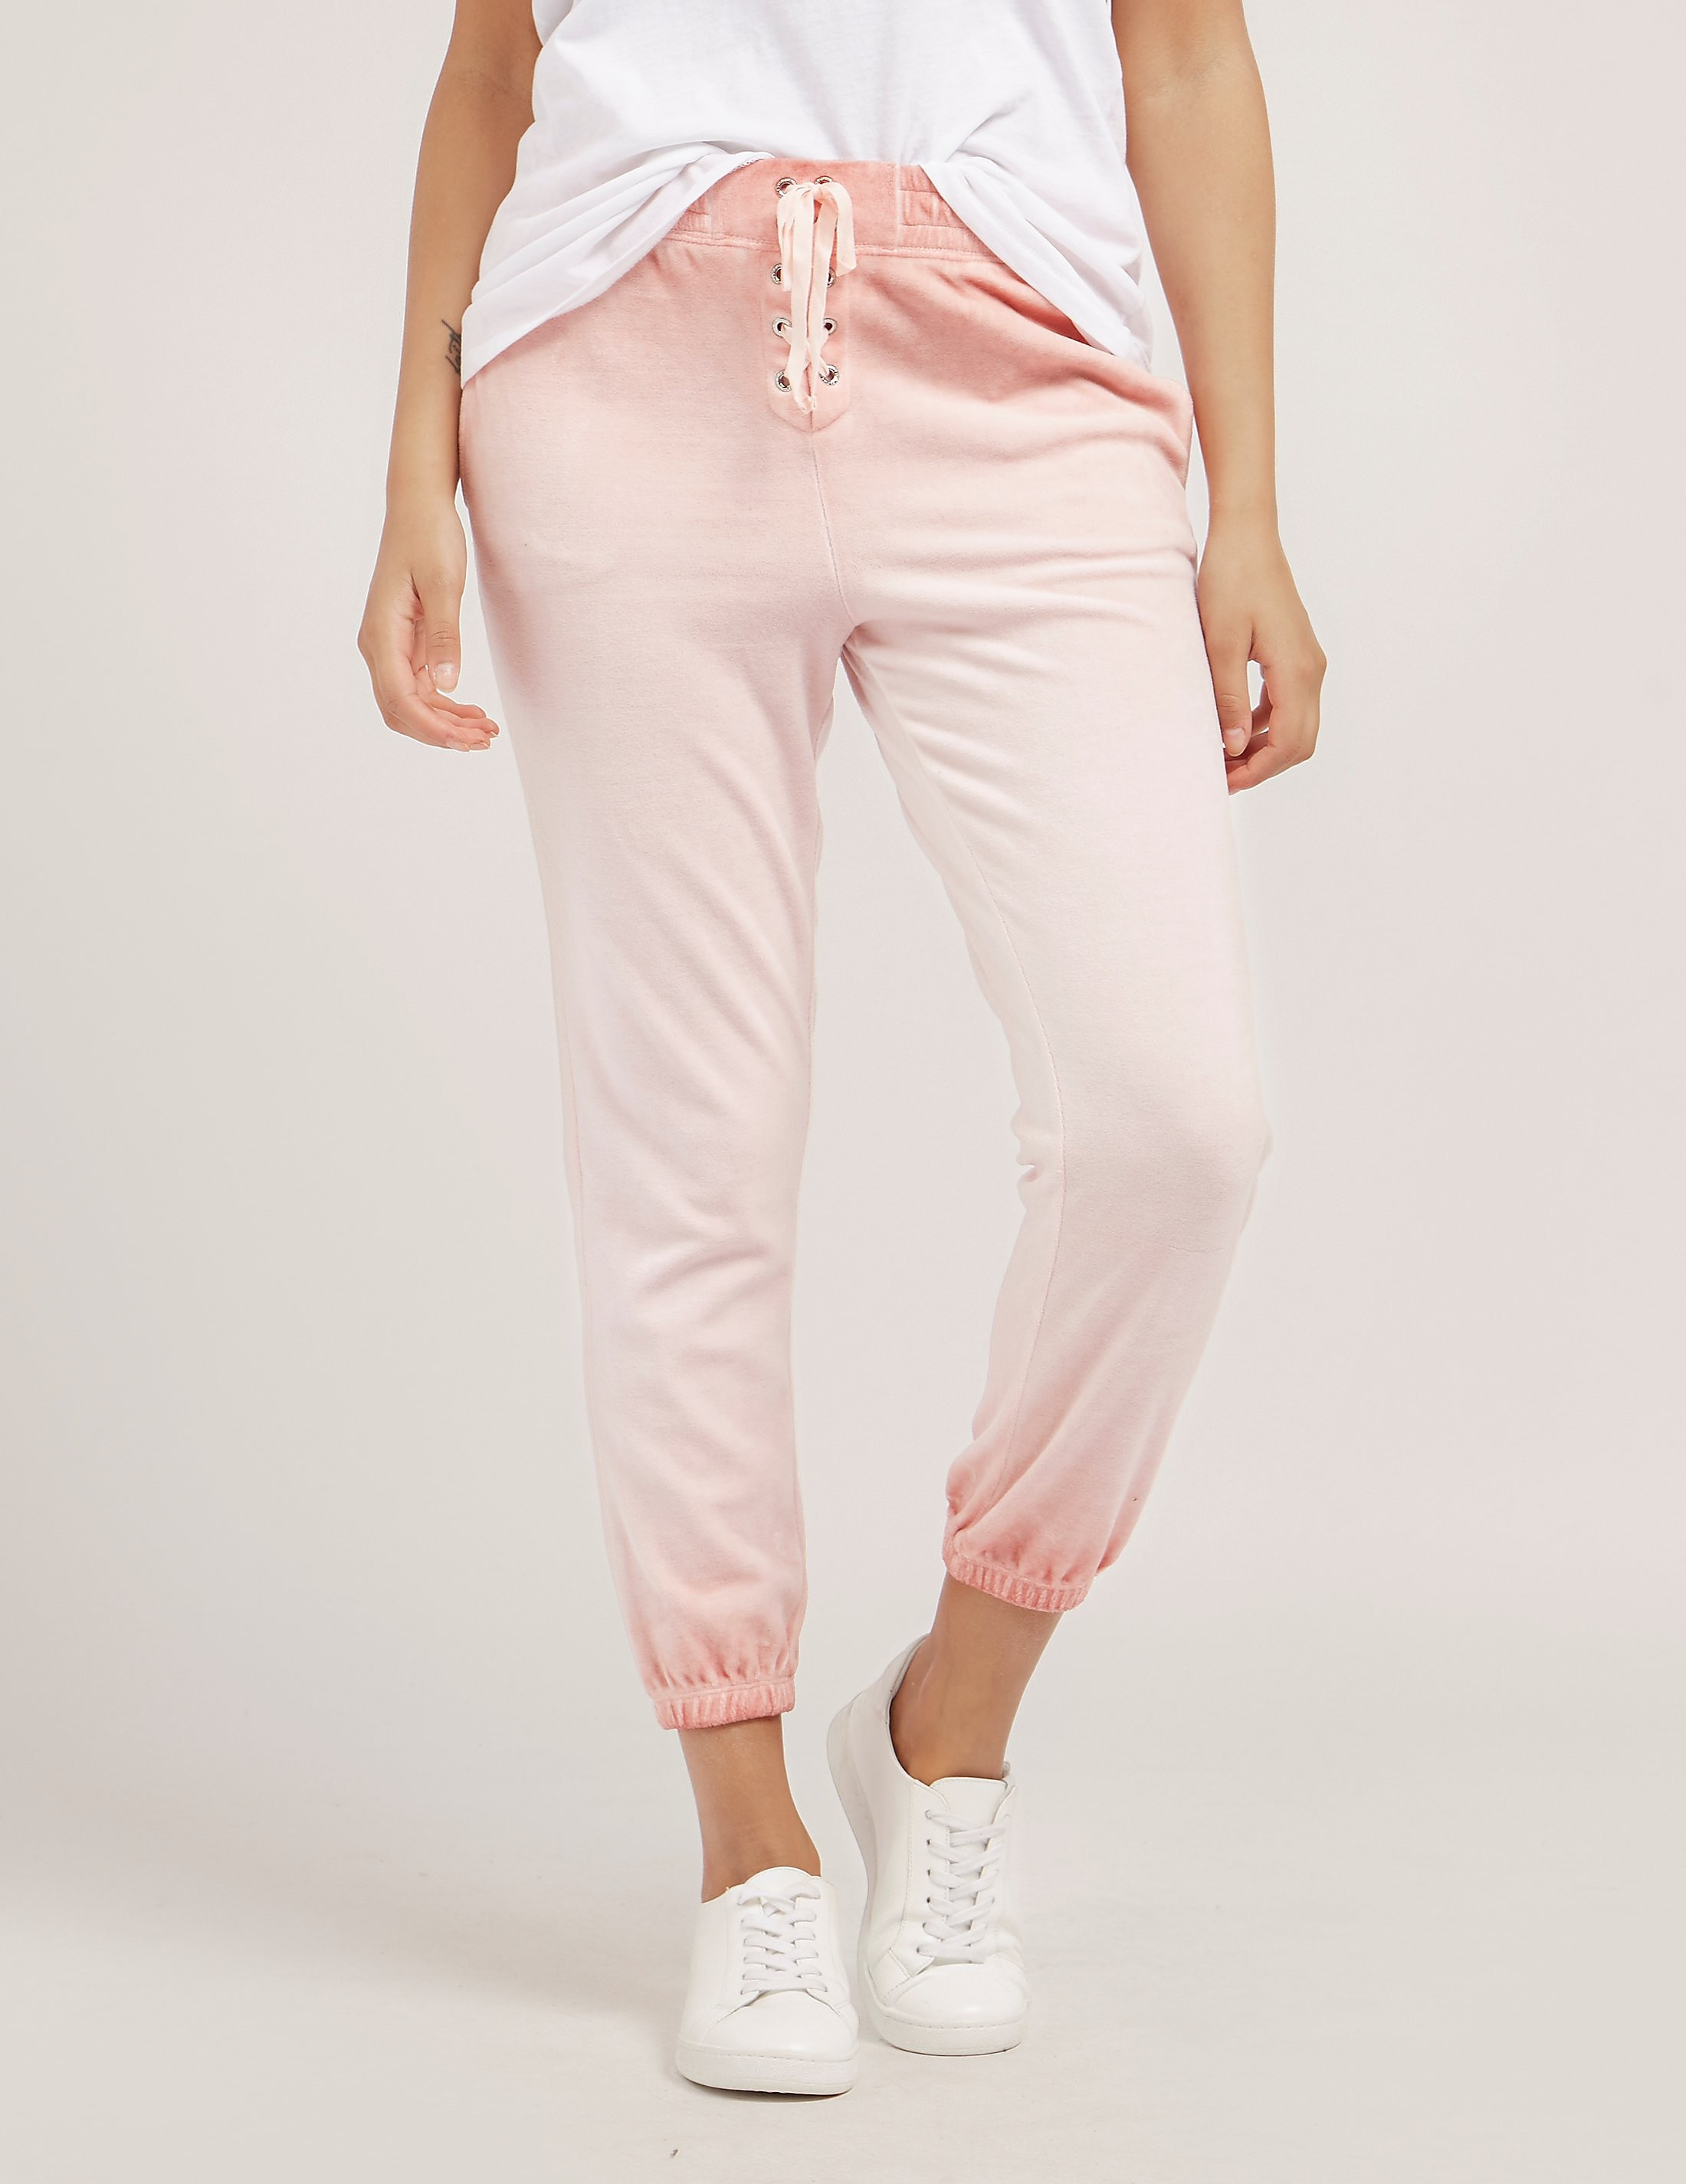 Juicy Couture Ombre Joggers